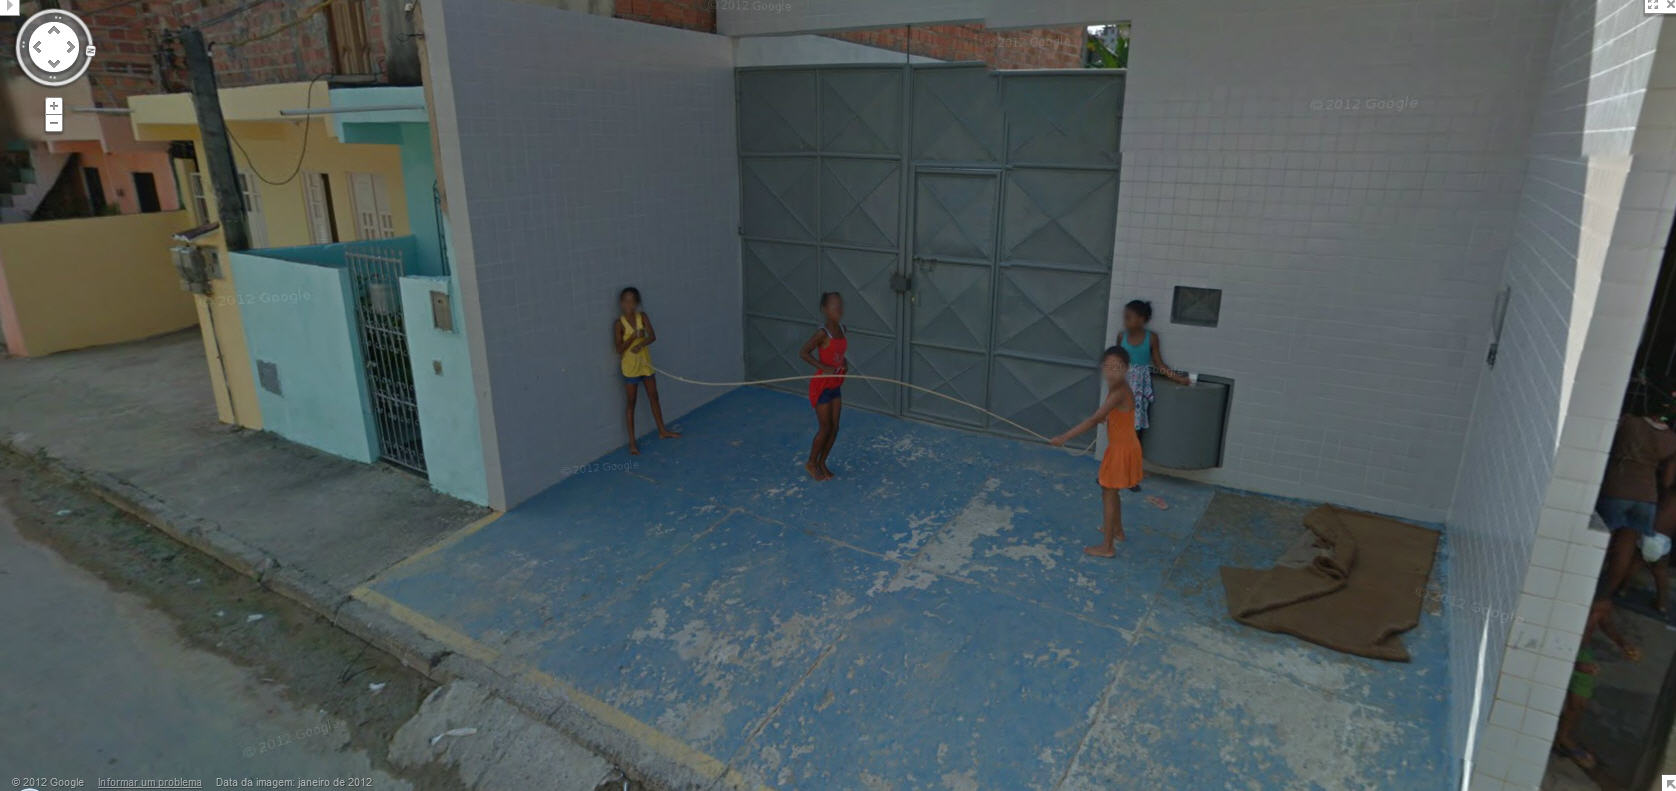 google-street-view-captures-some-happy-brazilian-girls-jumping-over-the-skipping-rope